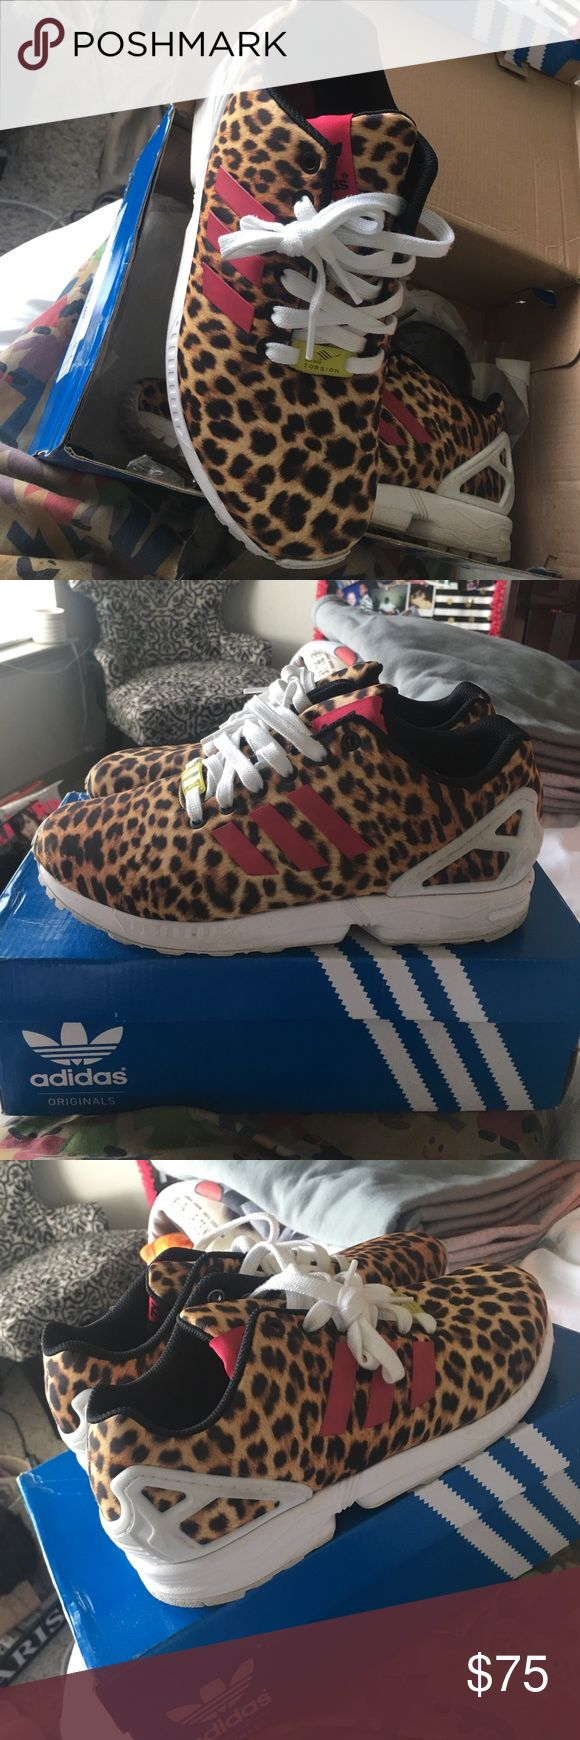 Adidas ZX FLUX Leopard, Adidas W8, original box & extra laces. Will be wiped down before shipped adidas Shoes Athletic Shoes